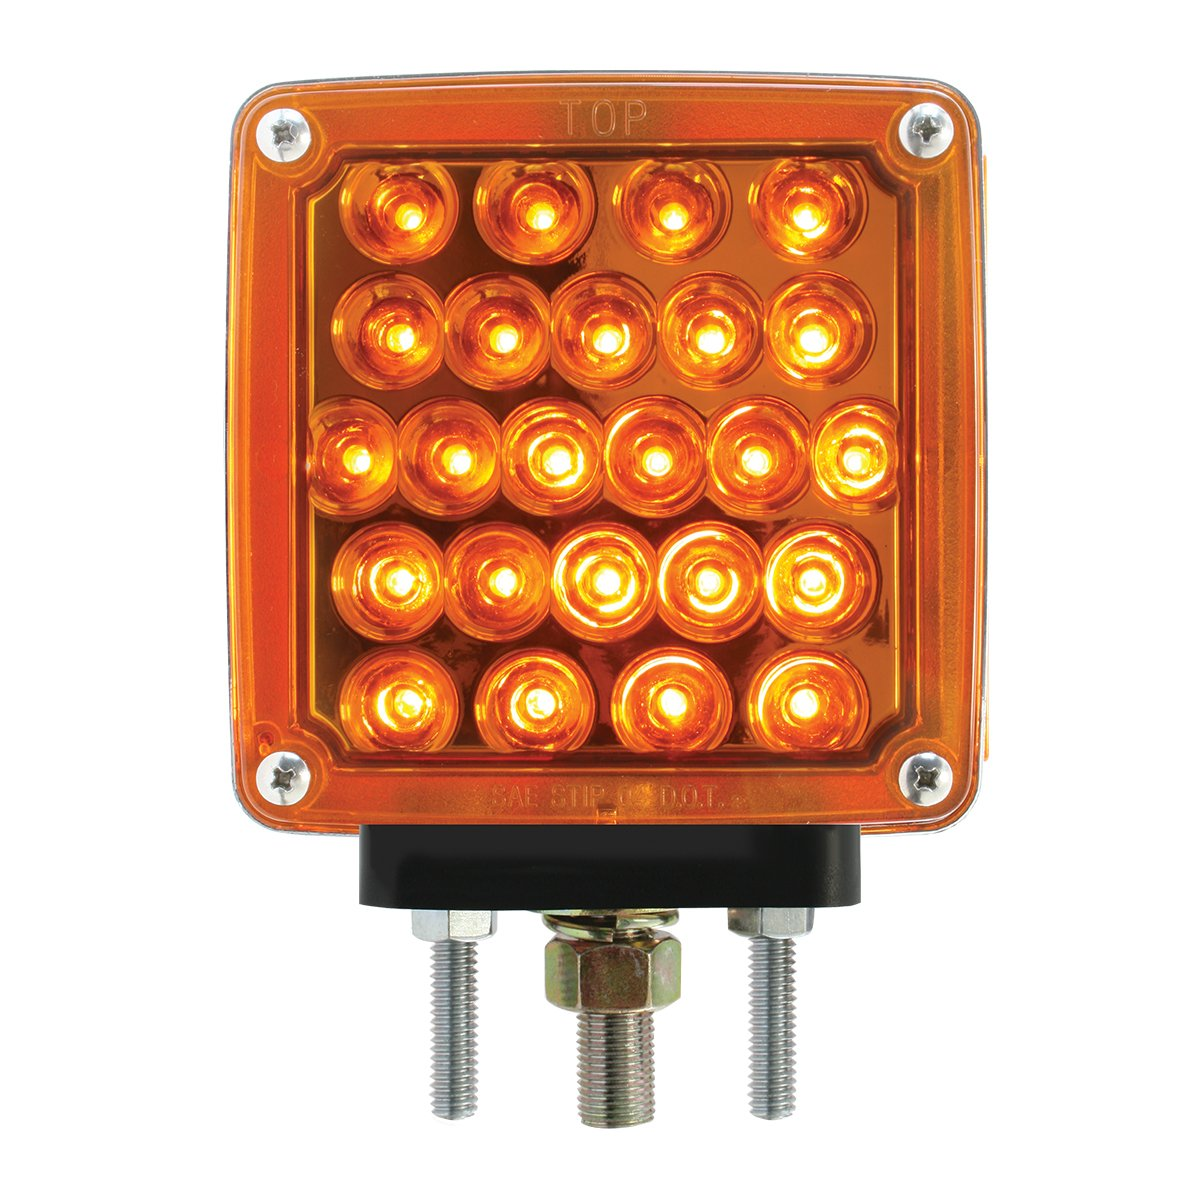 Grand General 77620 Amber/Amber 4.5'' Pearl Square Double Face LED Pedestal Light (for Truck/SUV/RV/Vehicle/Trailer)